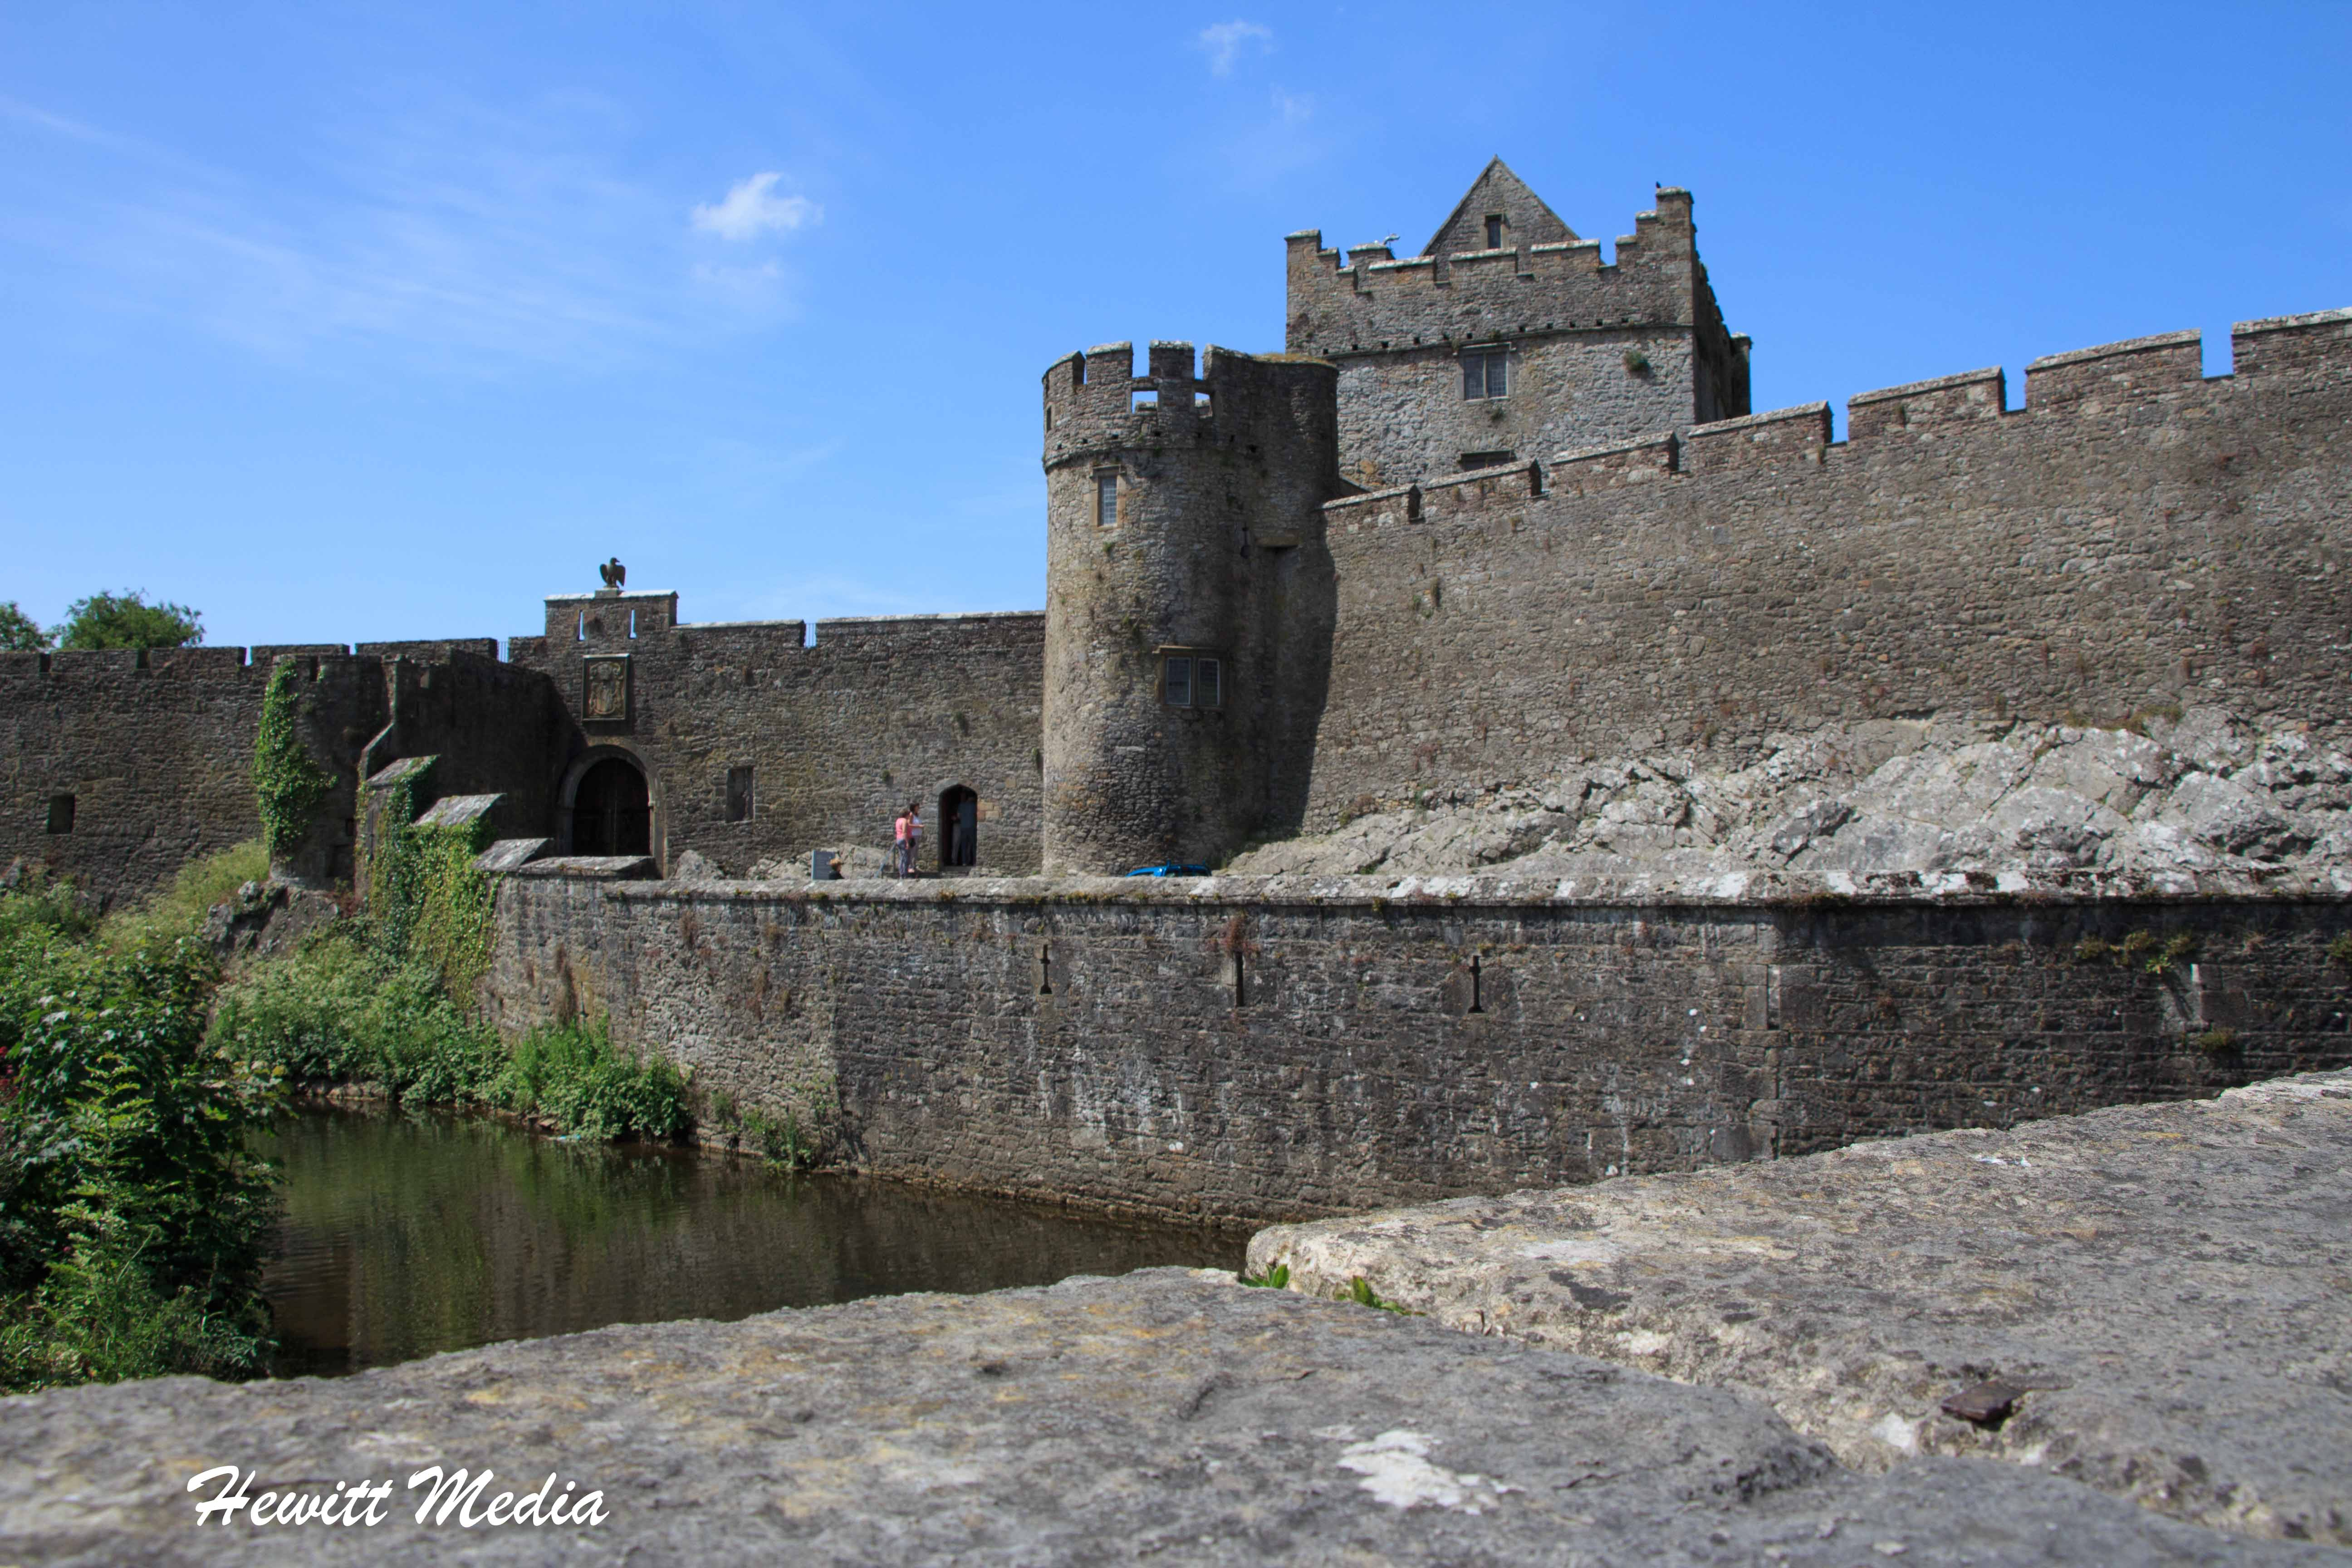 A view of the Cahir Castle from across the river